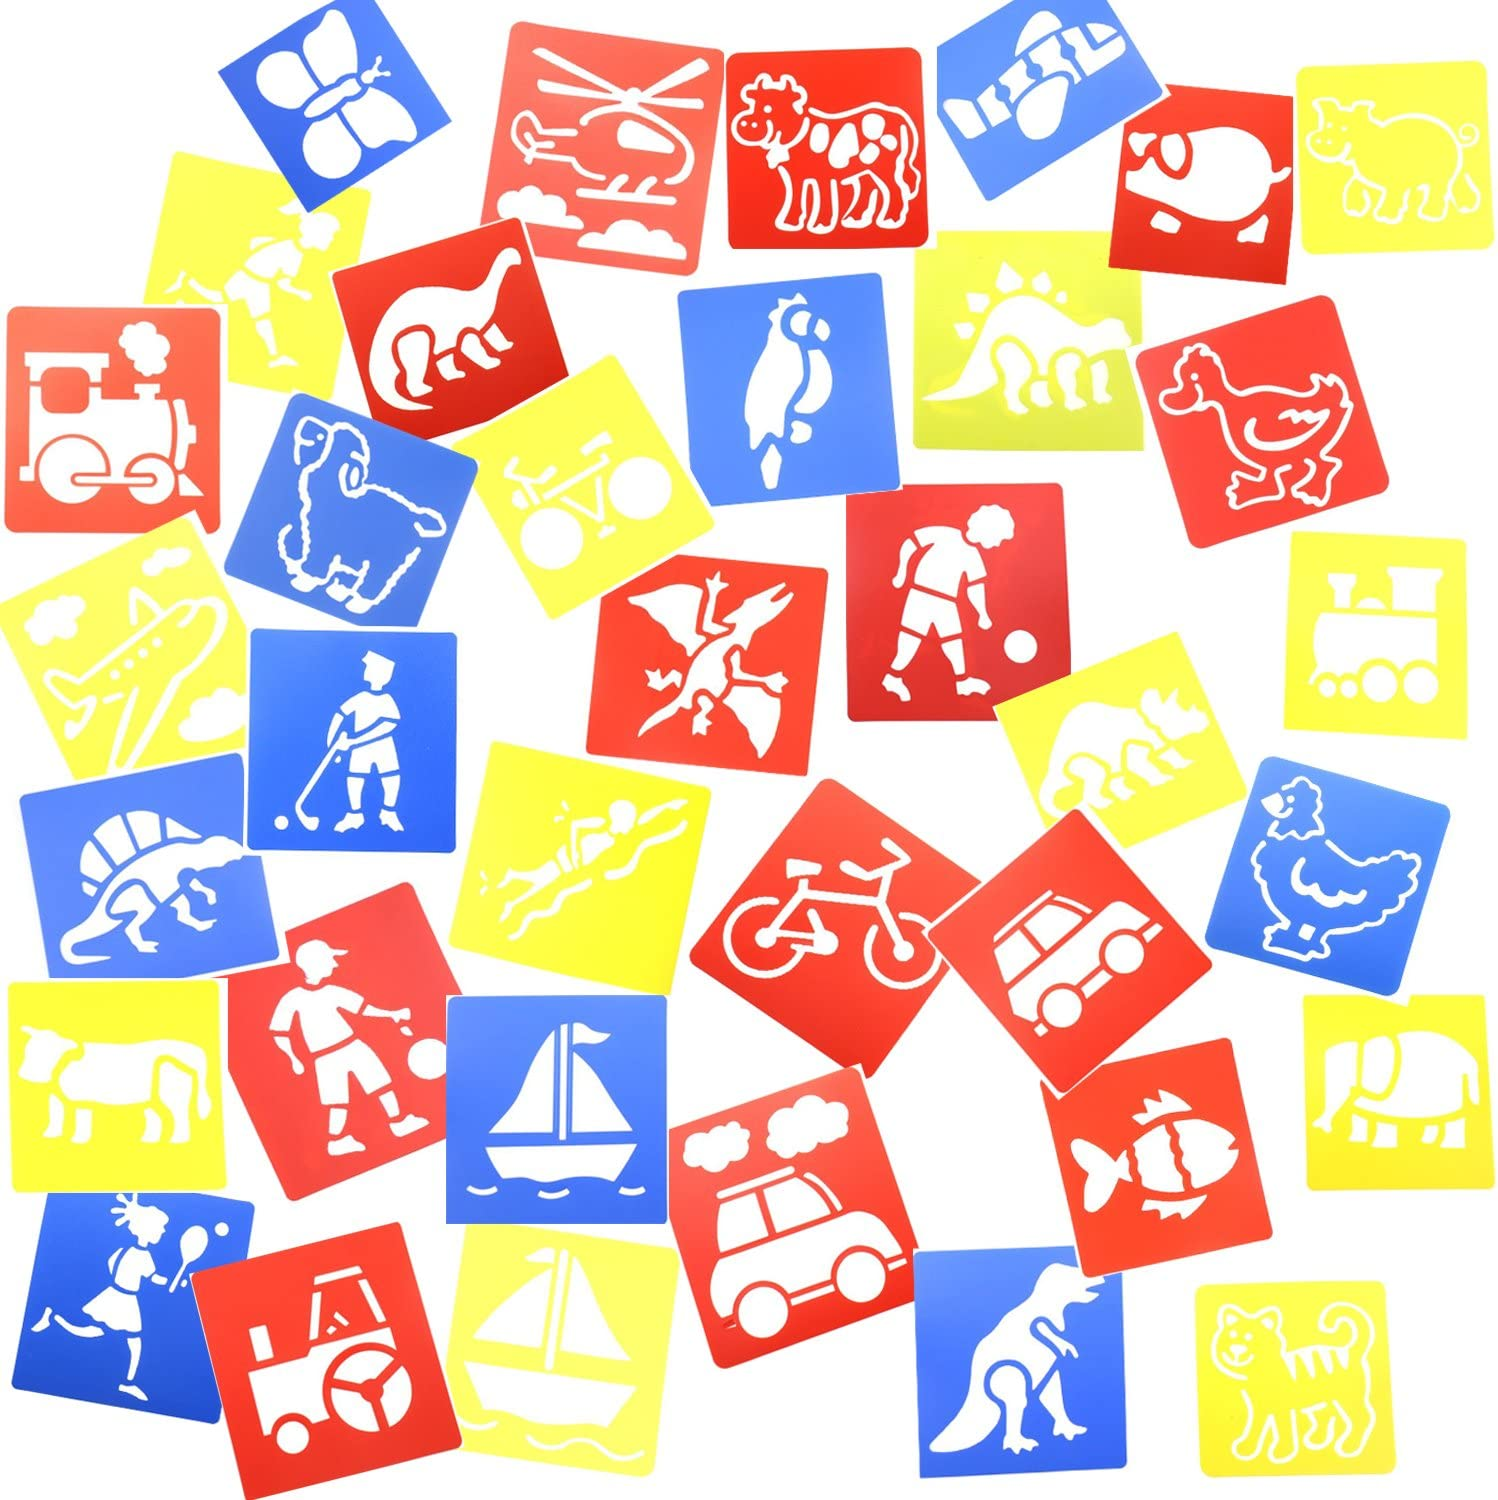 amazon com inxens plastic stencils for kids craft drawing stencils painting templates shapes set of 36 toys games inxens plastic stencils for kids craft drawing stencils painting templates shapes set of 36